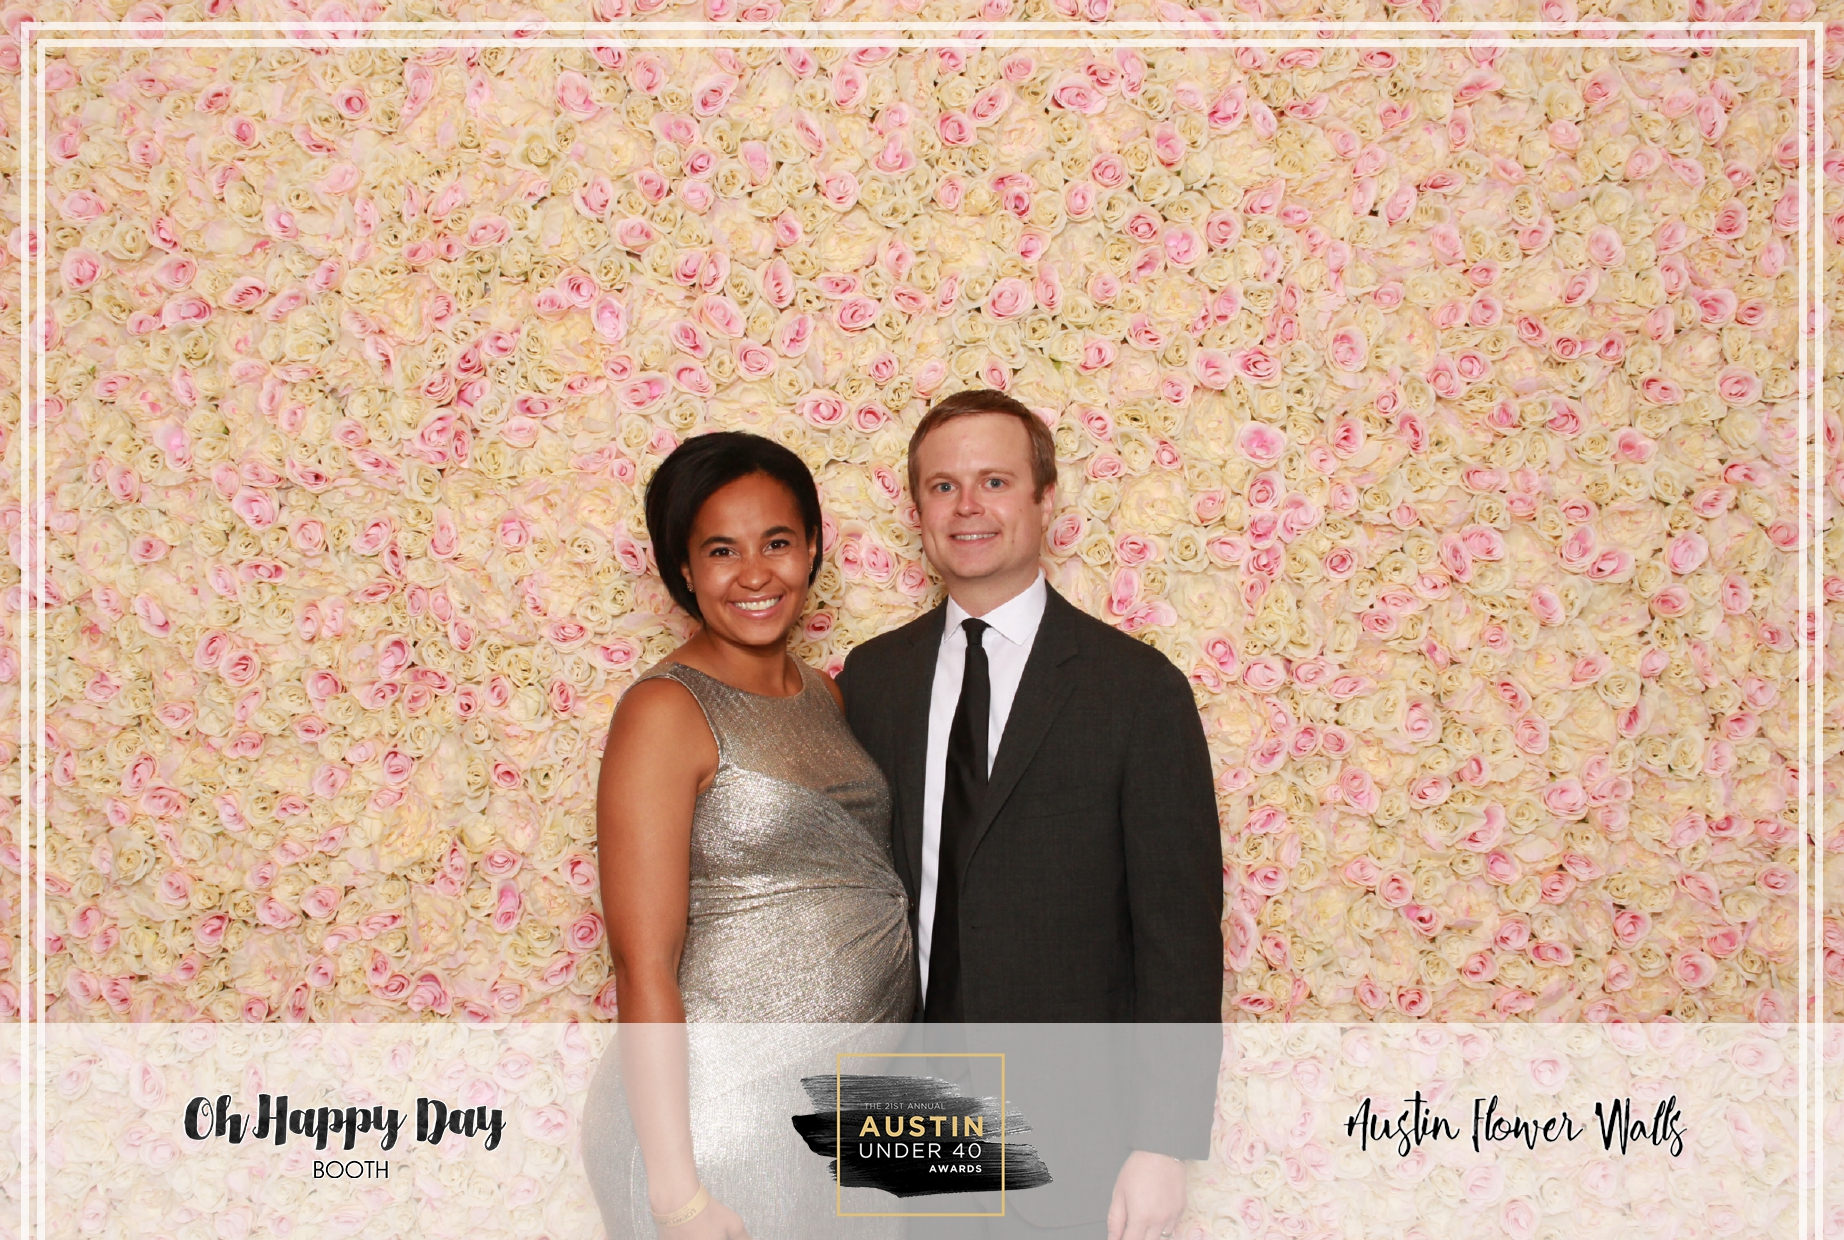 Oh Happy Day Booth - Austin Under 40-80.jpg